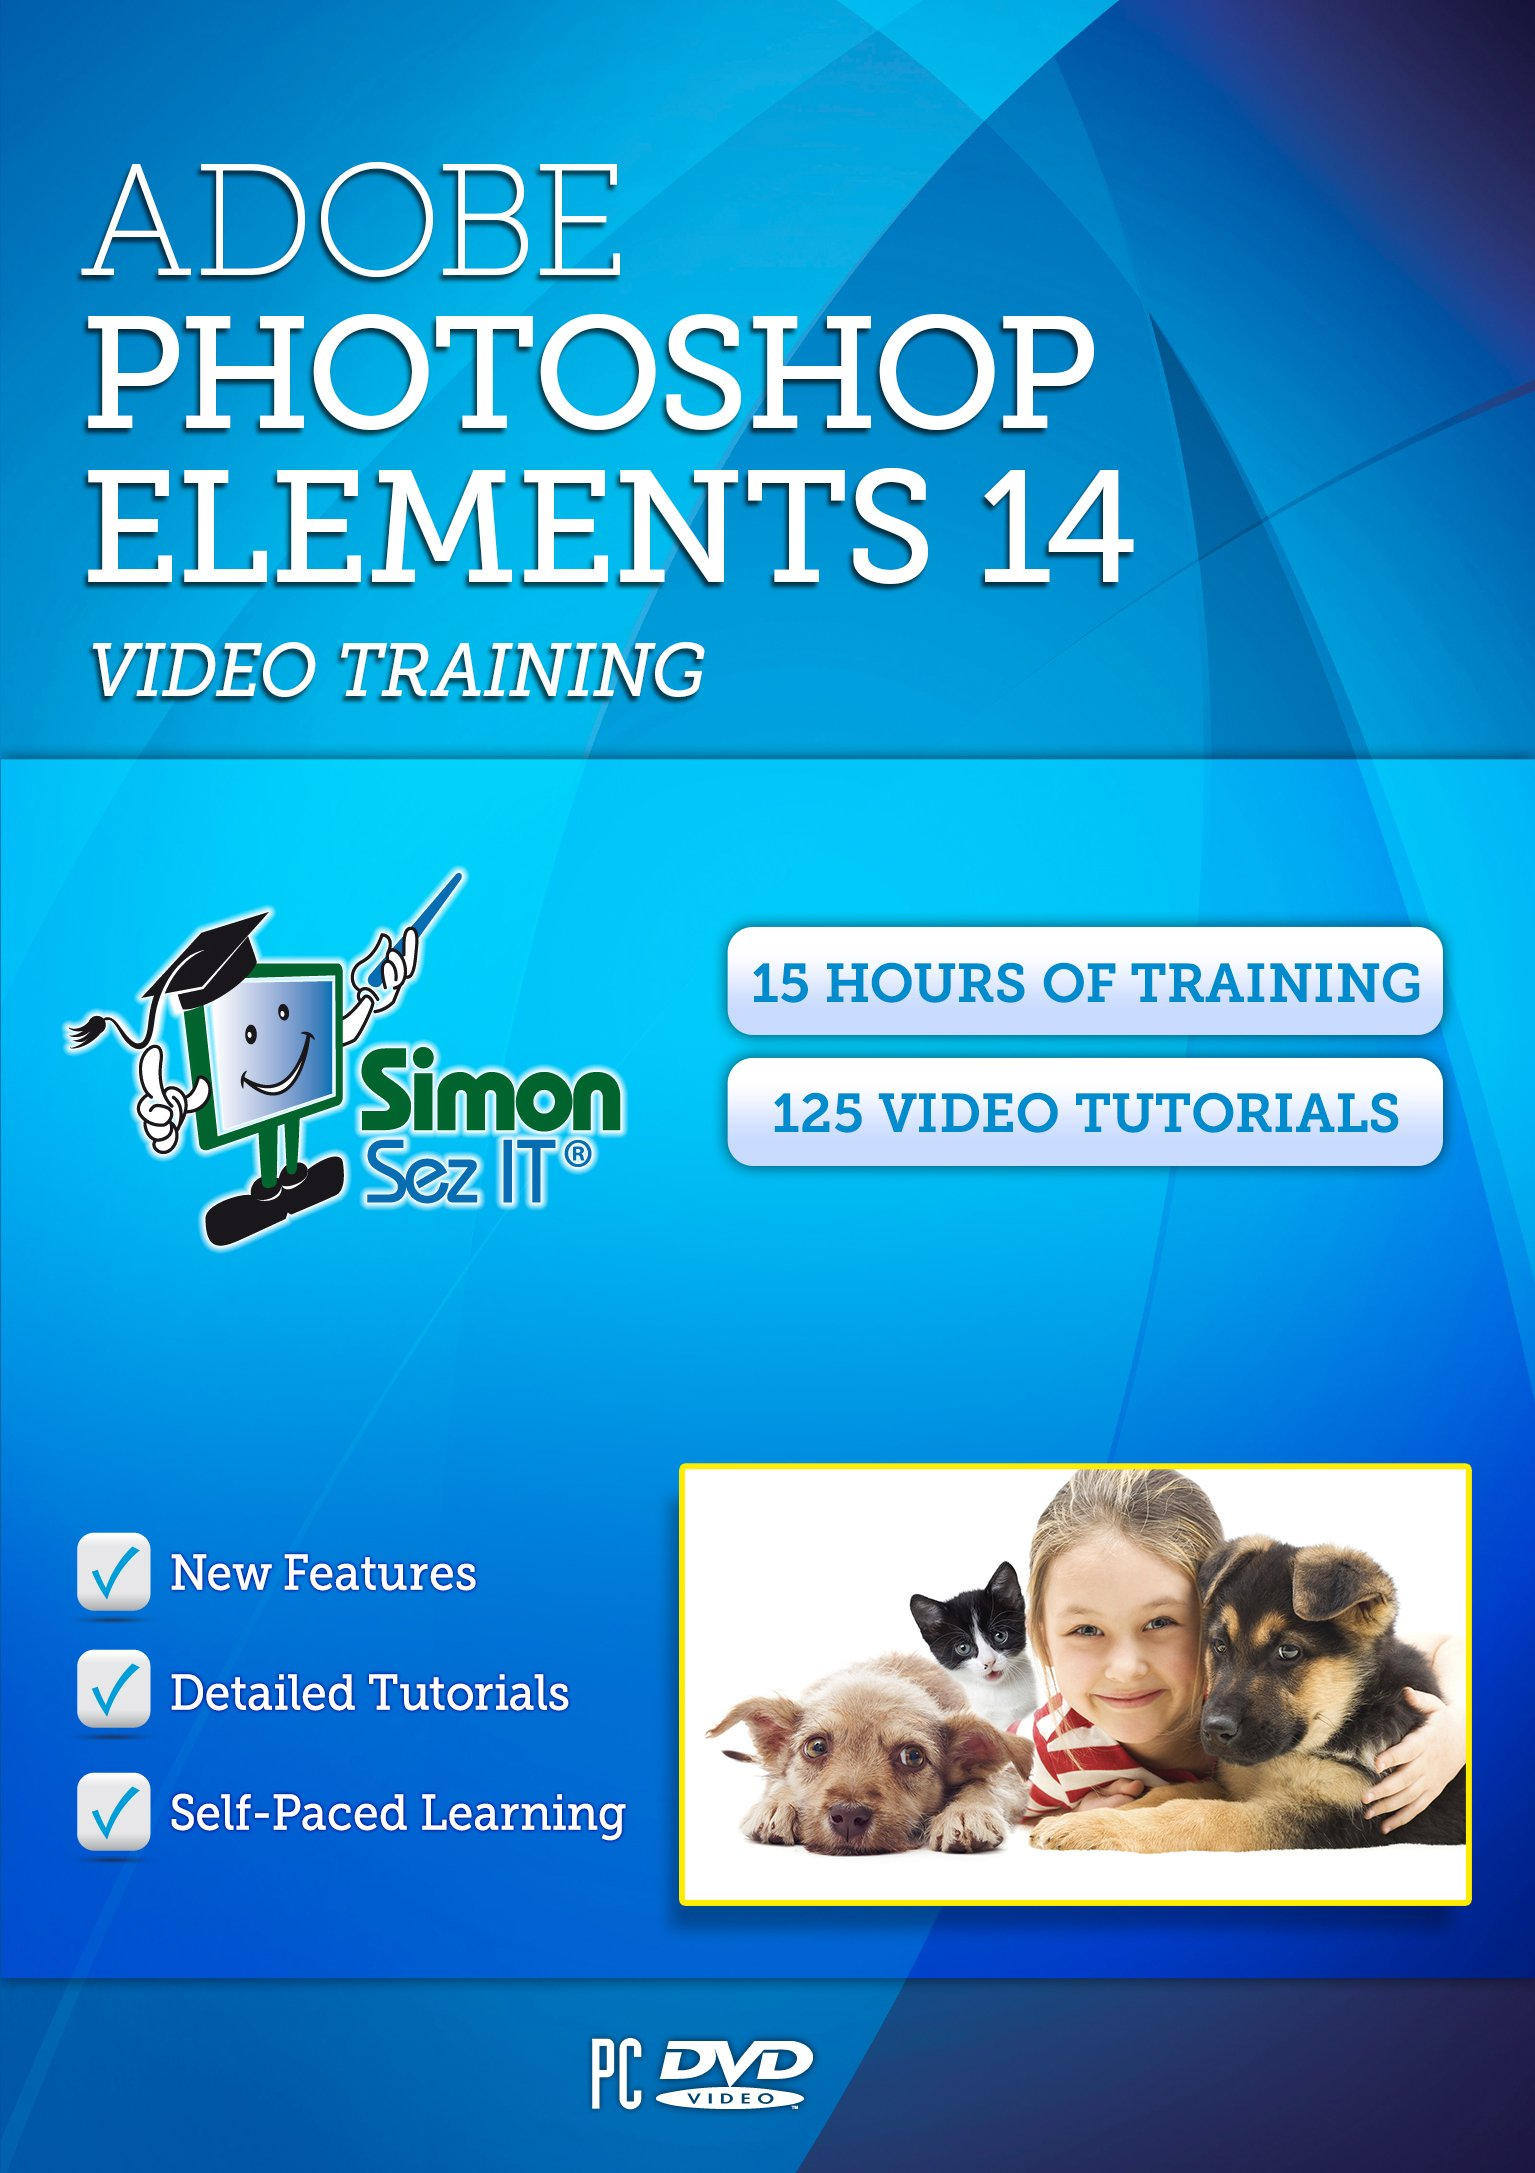 Learn Photoshop Elements 14 Video Training Tutorials - 15 Hours of Training by Simon Sez IT